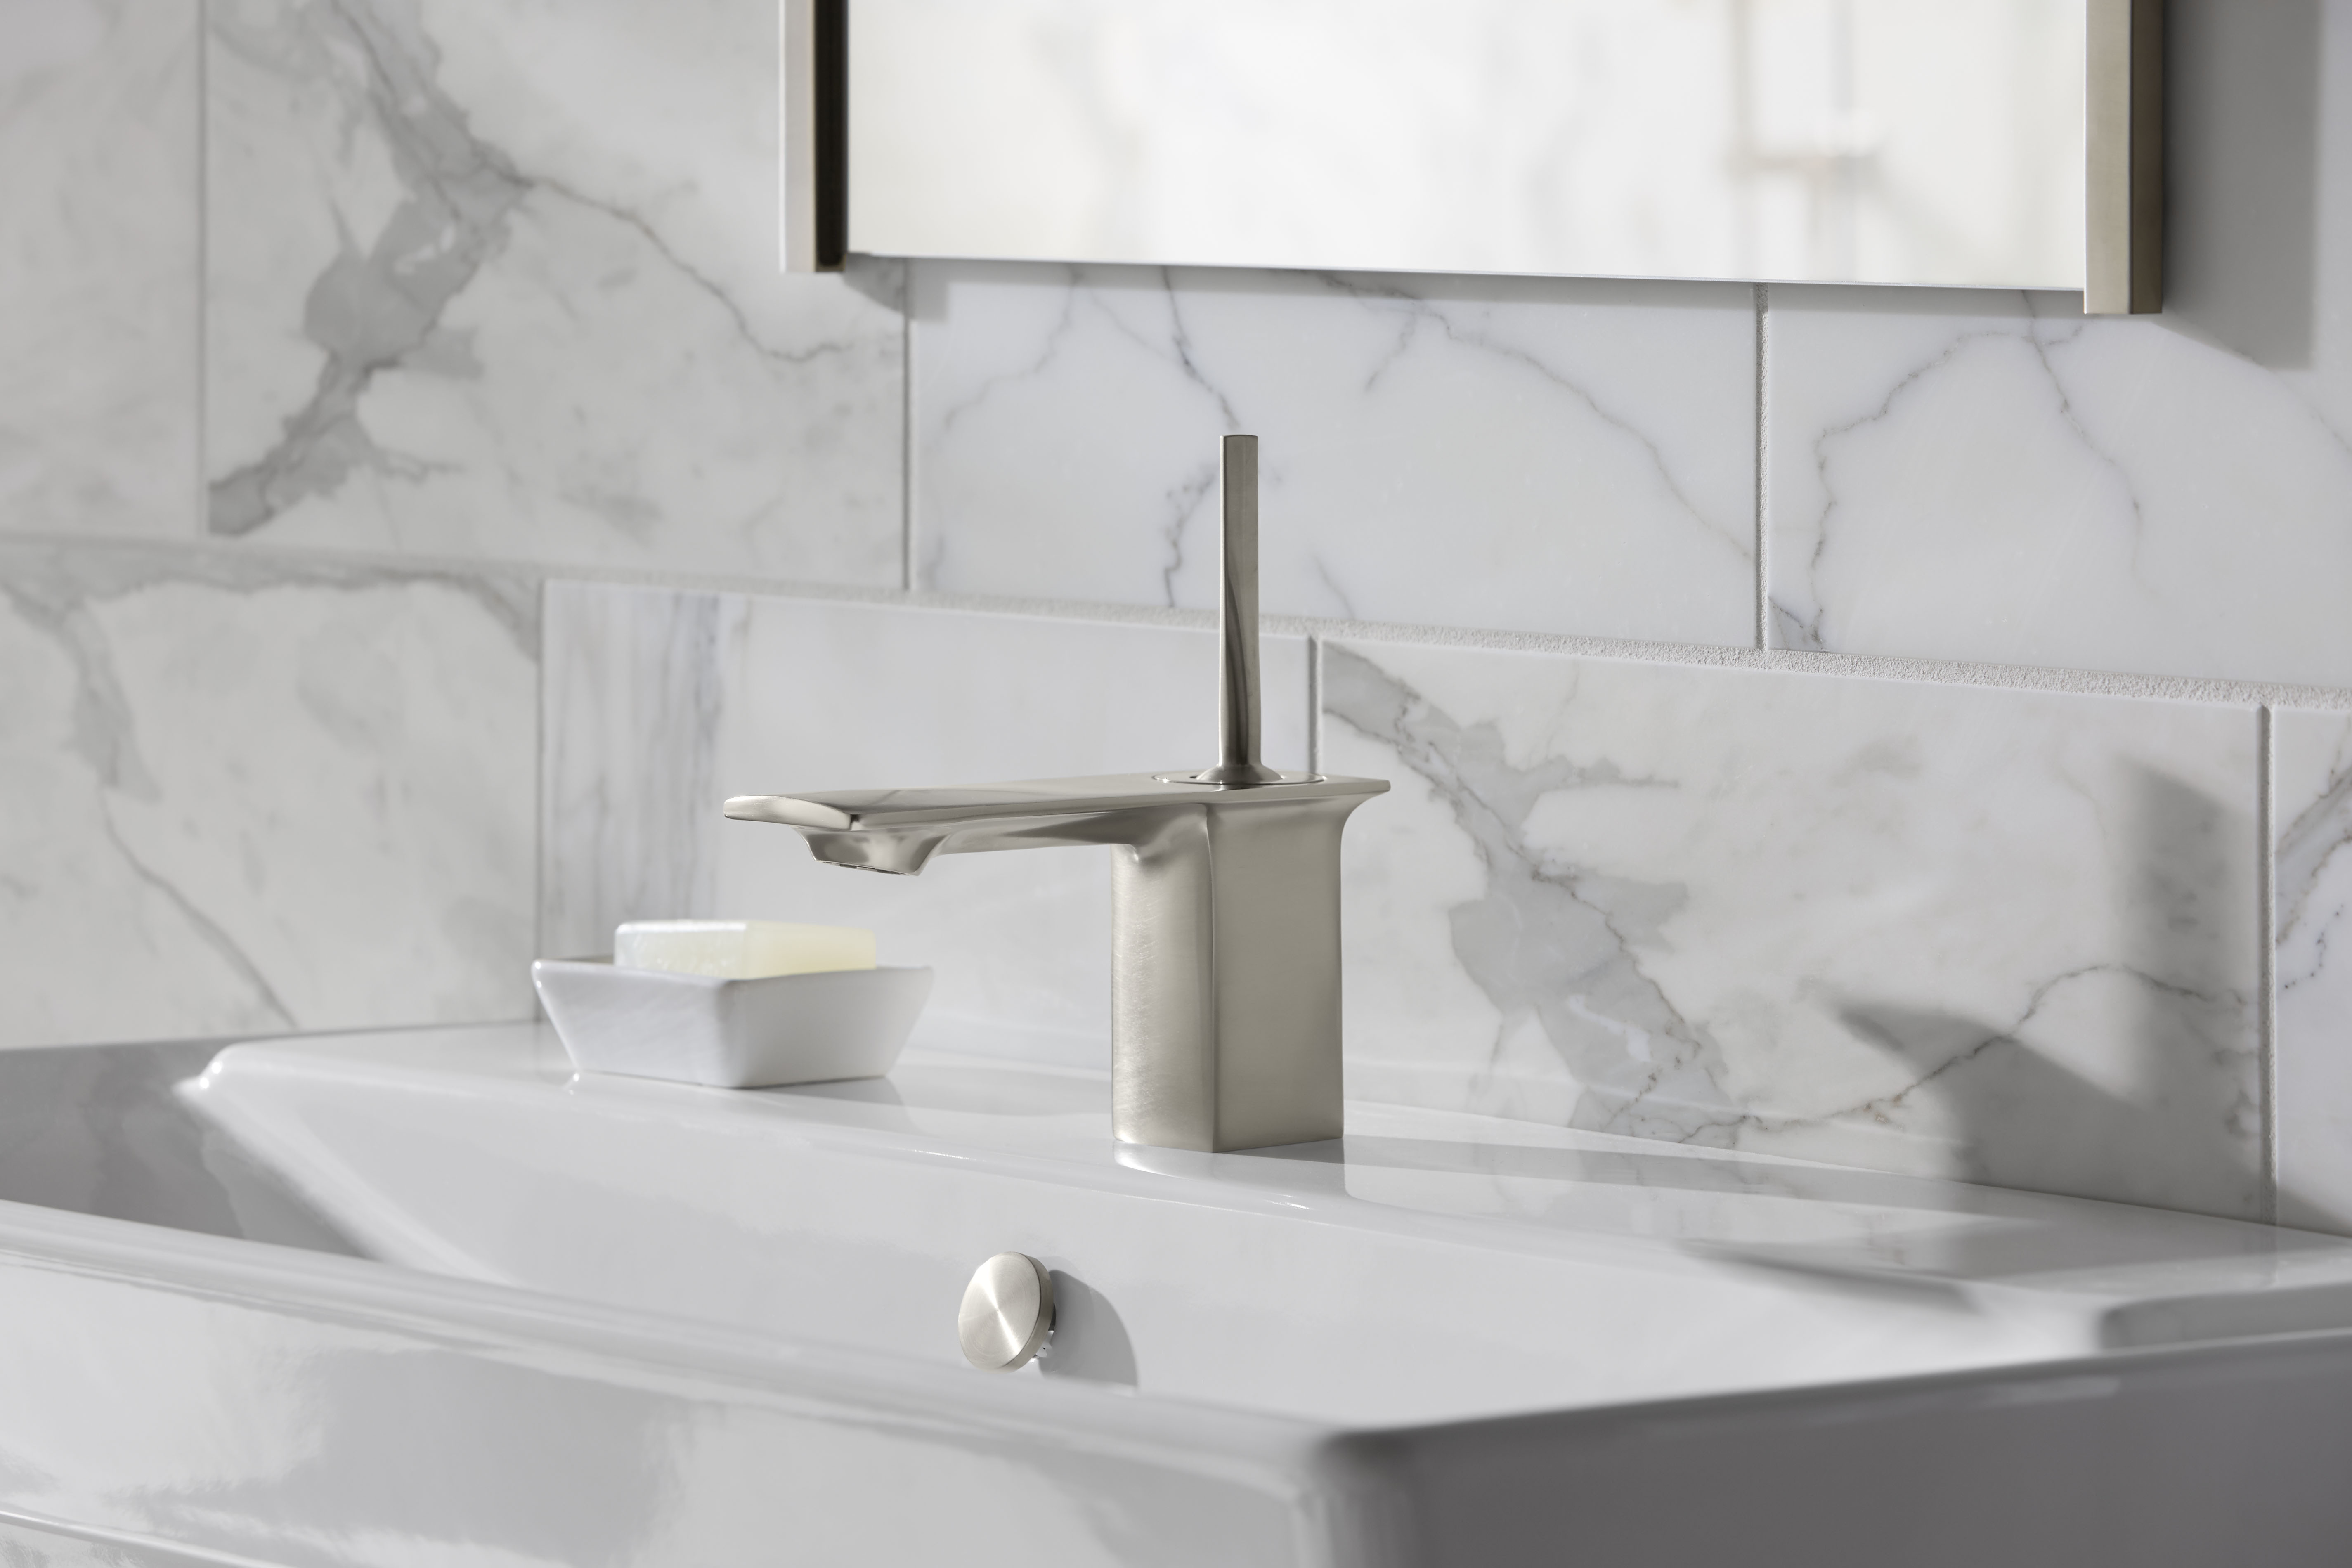 Reve Sink     Stance Faucet     A Vibrant Brushed Nickel finish has neutral tones that can complement classic marble walls and make a modern faucet feel timeless.